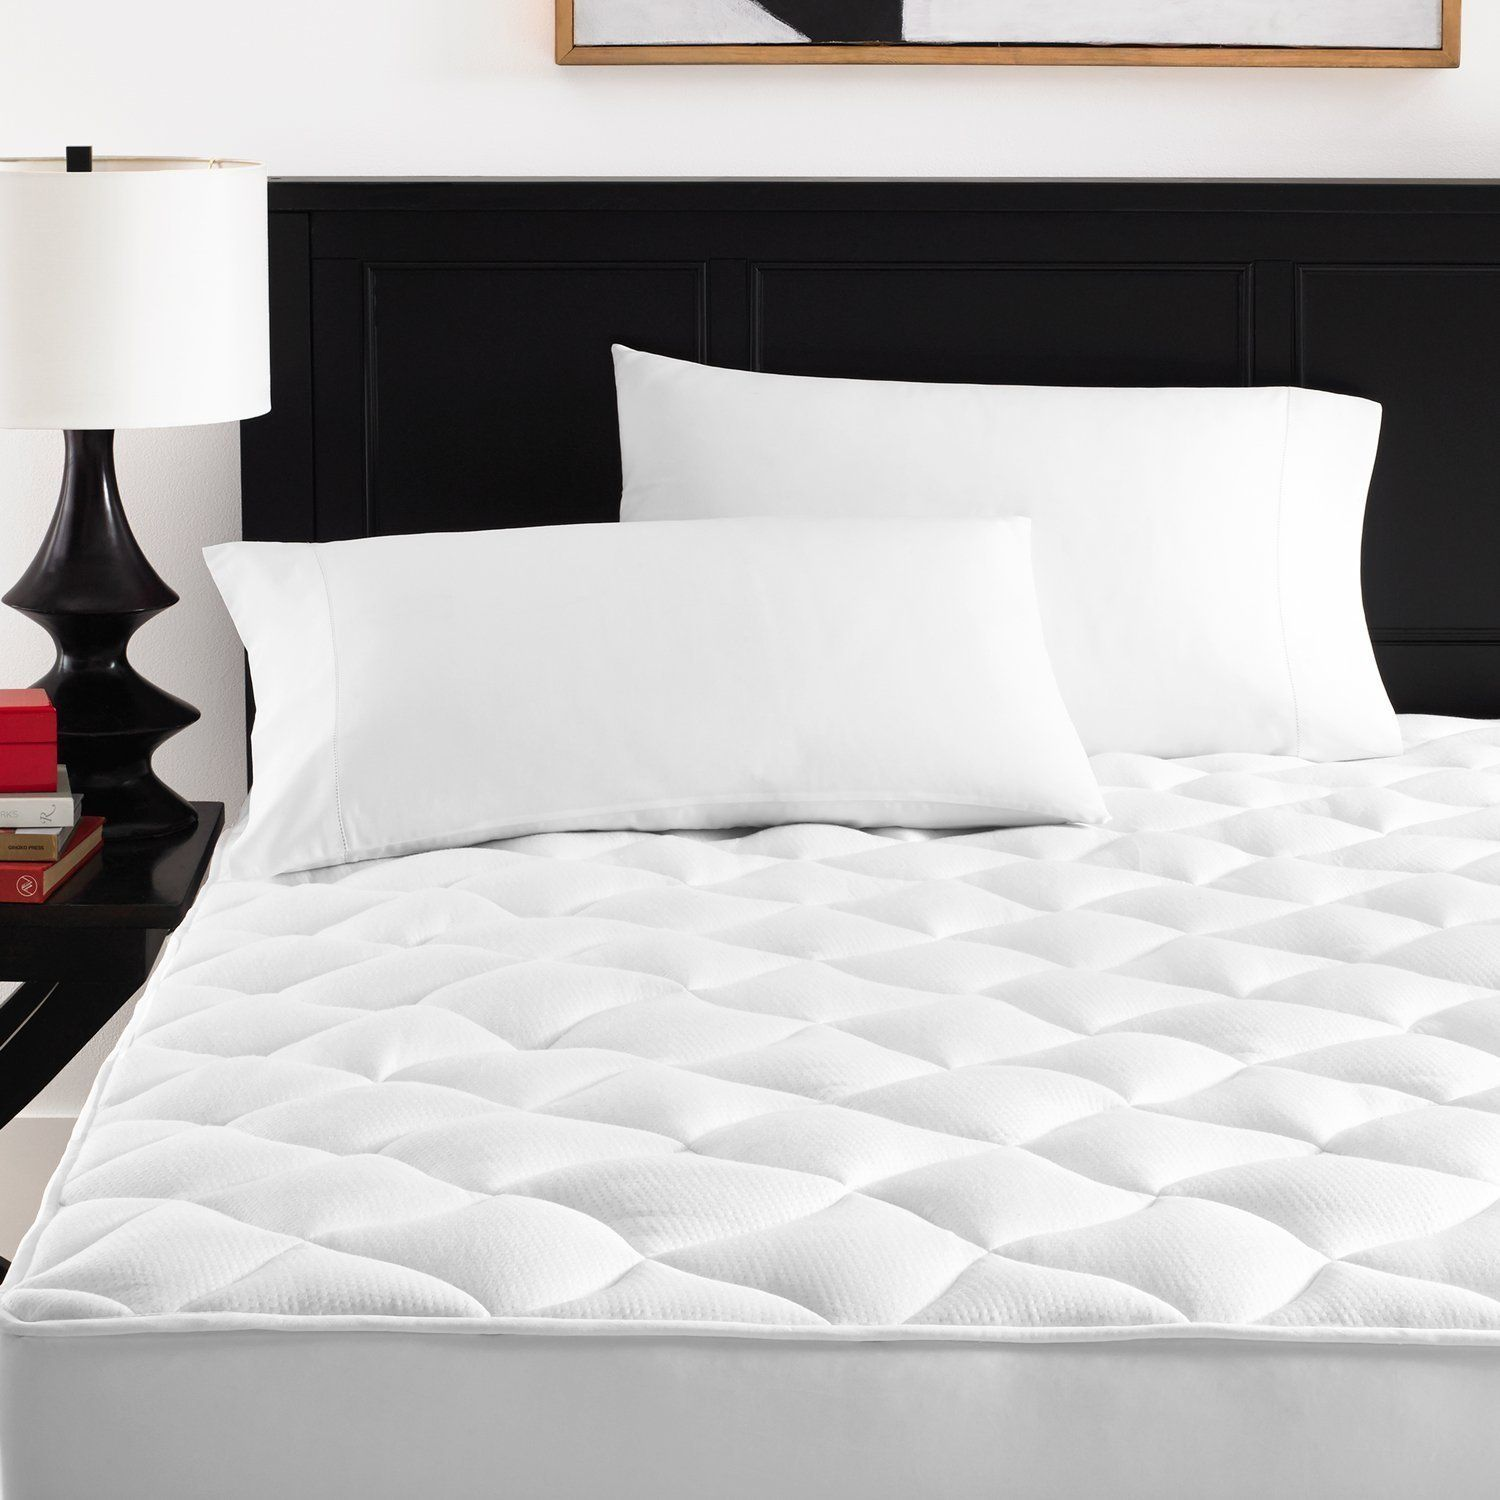 Make Your Dorm Bed Feel Like A Pillow And Get Yourself A Comfy